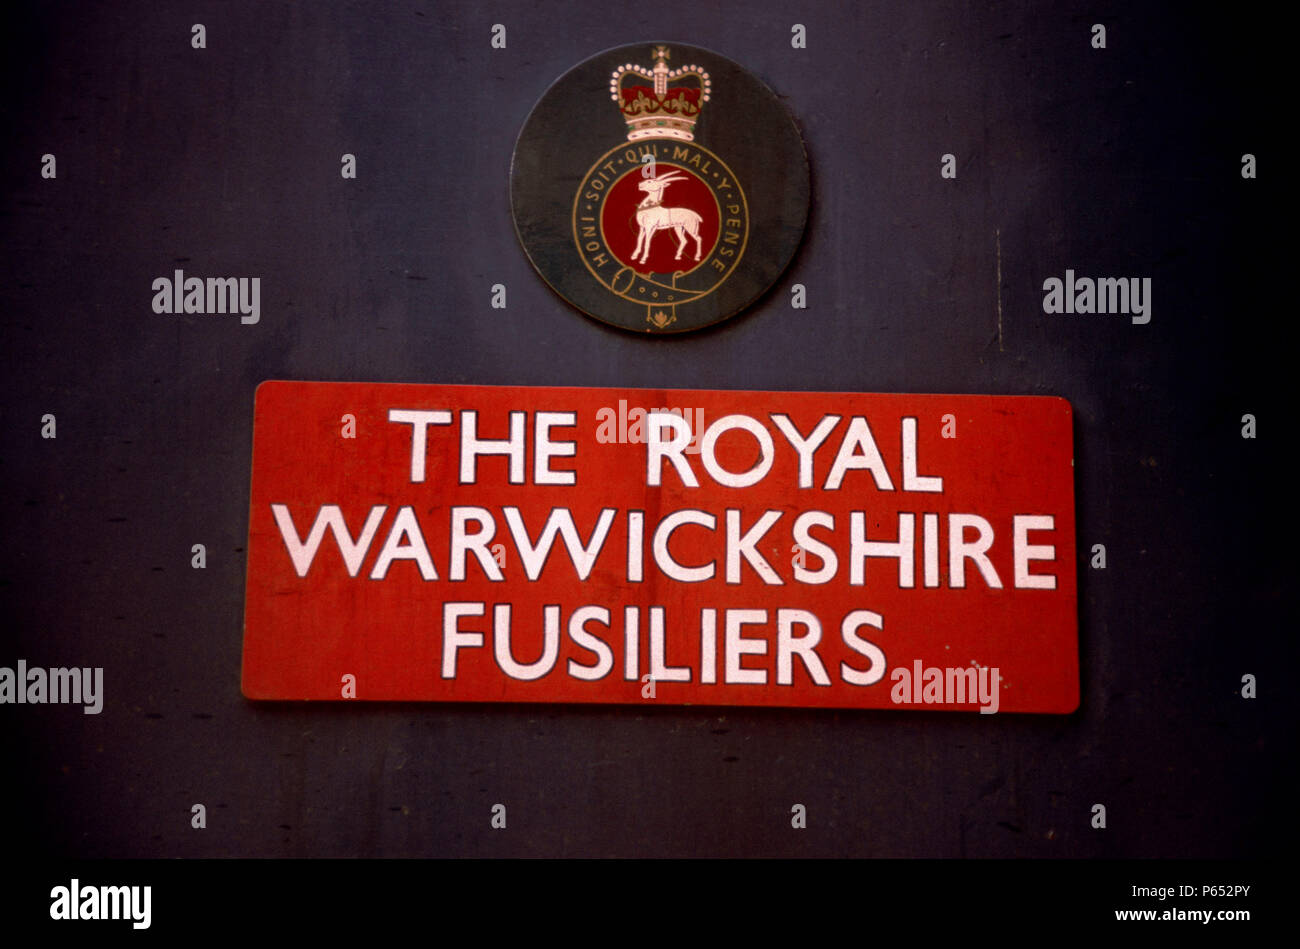 Nameplate and badge on locomotive The Royal Warwickshire Fusiliers. C1993 - Stock Image